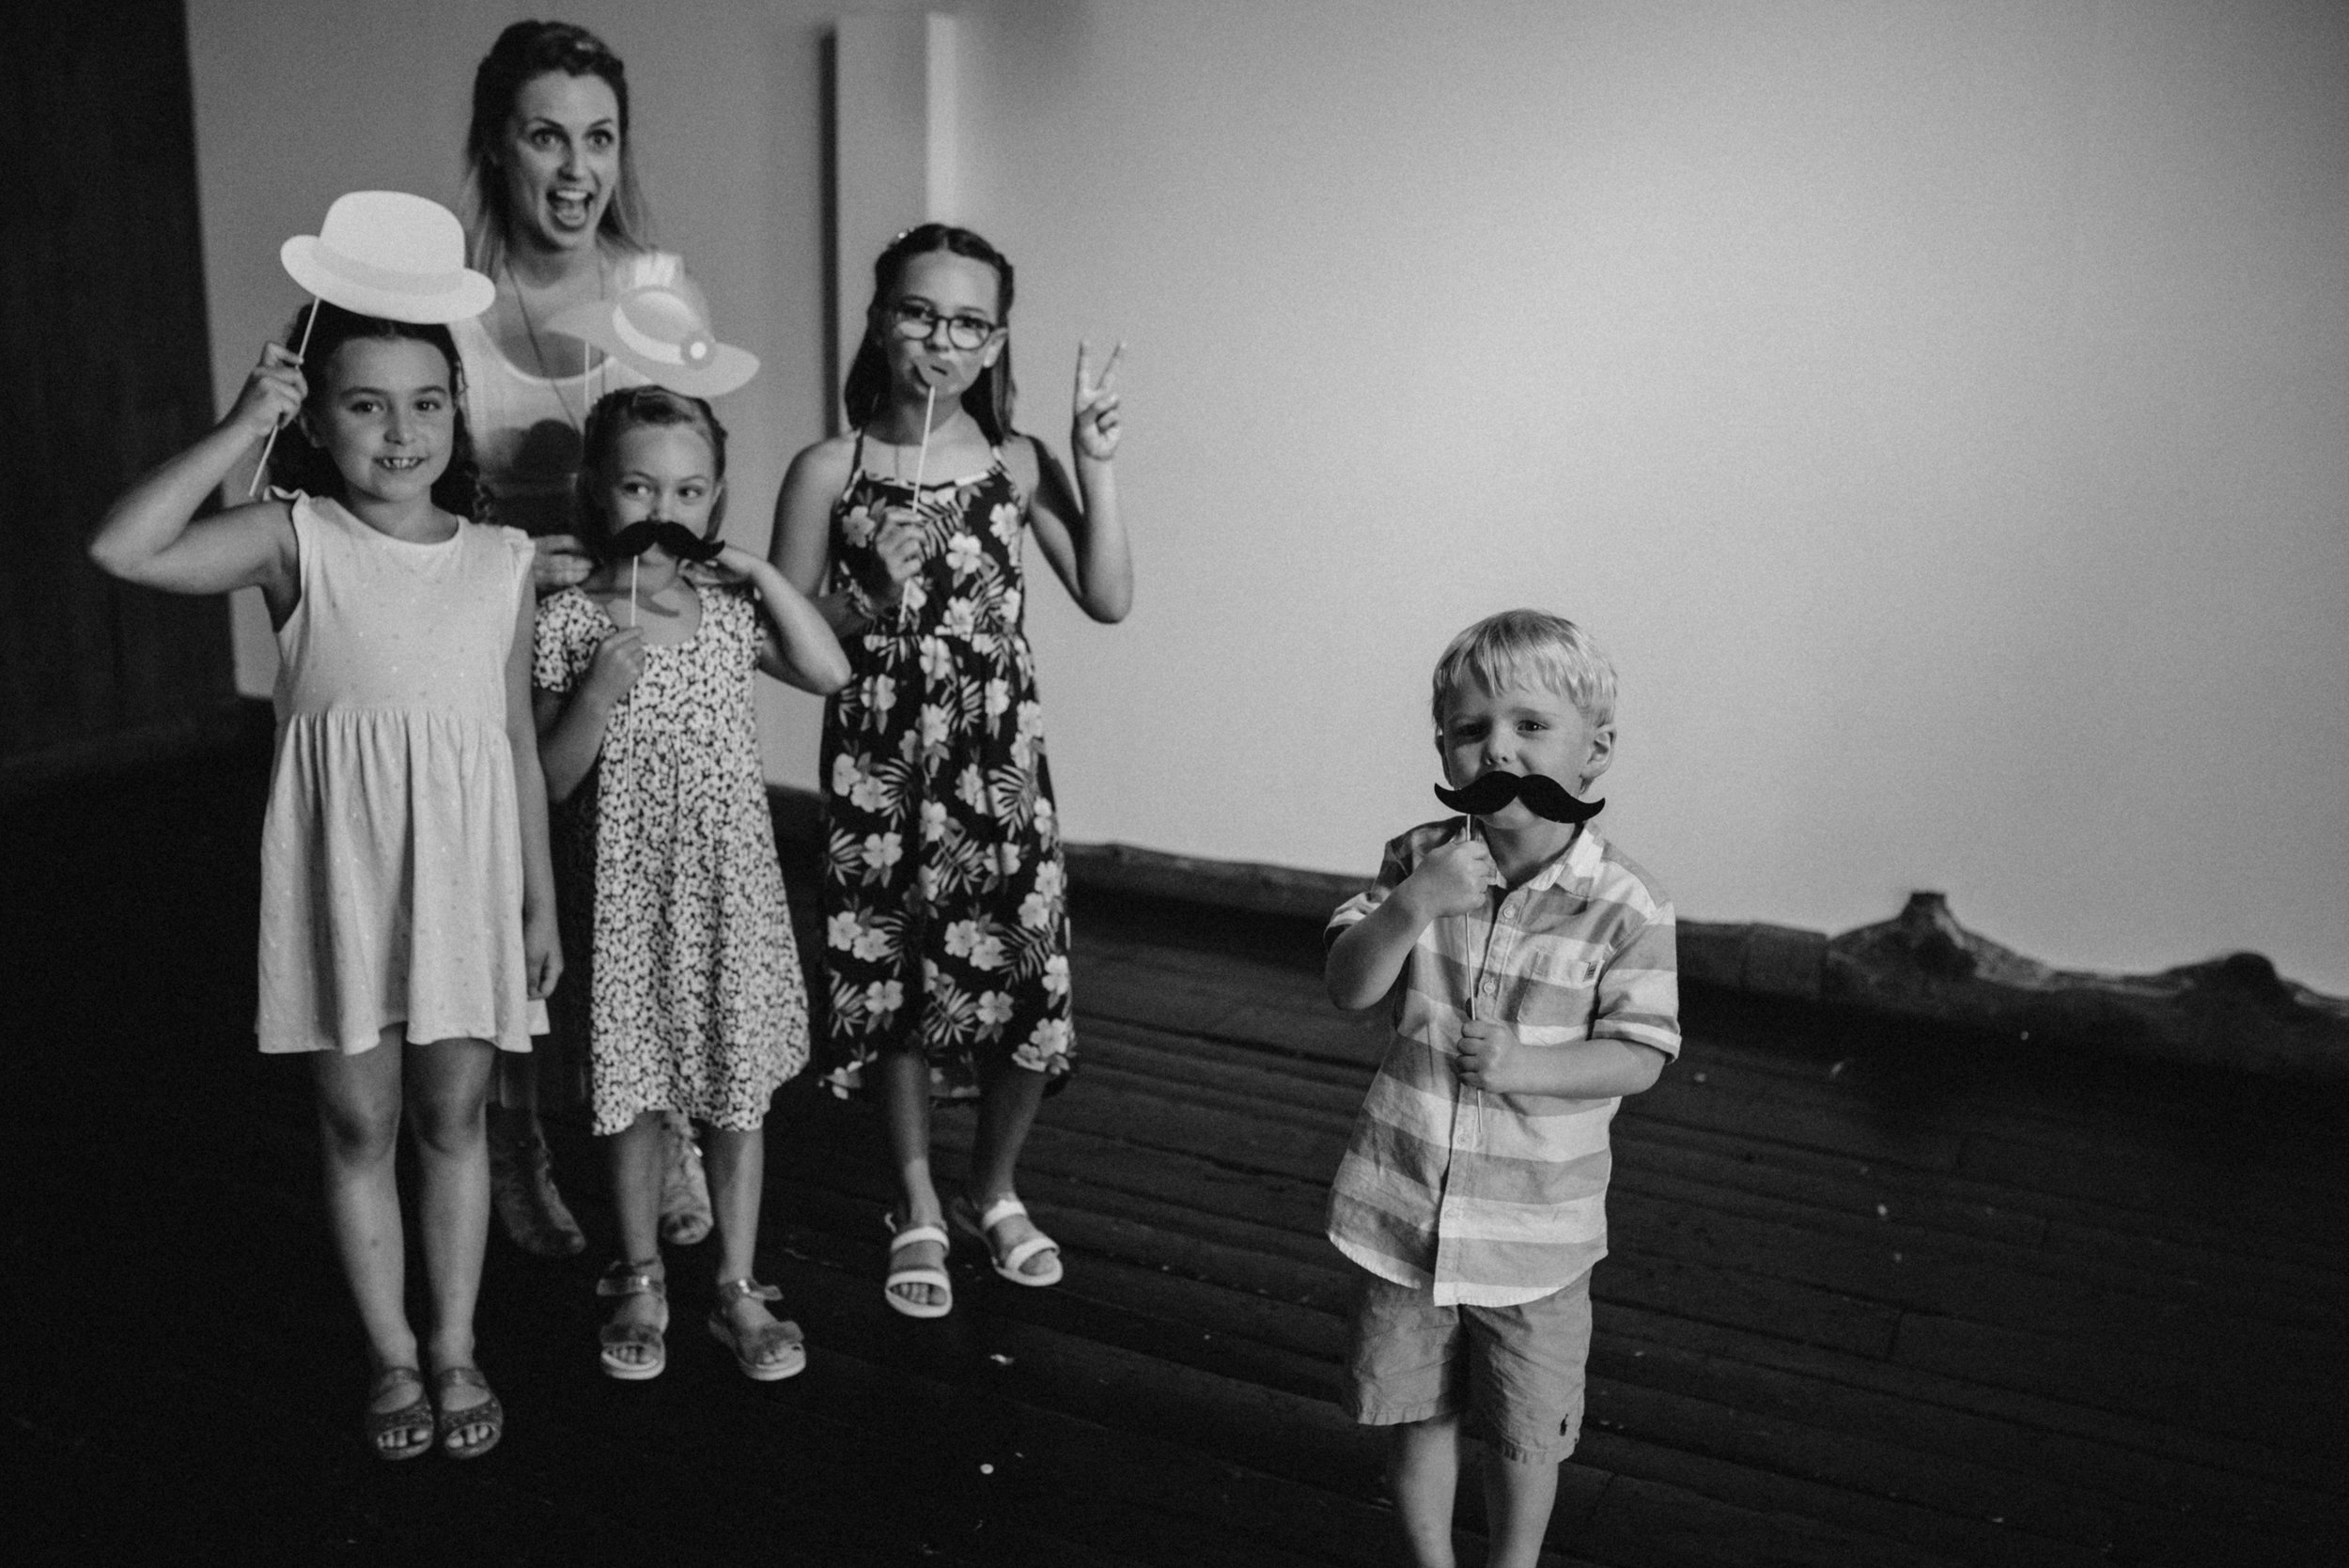 gatineau_photographe_mariage_ottawa_wedding_photography_documentary_candid_unposed_lifestyle_photography_photographie_613_family_famille (5).jpg